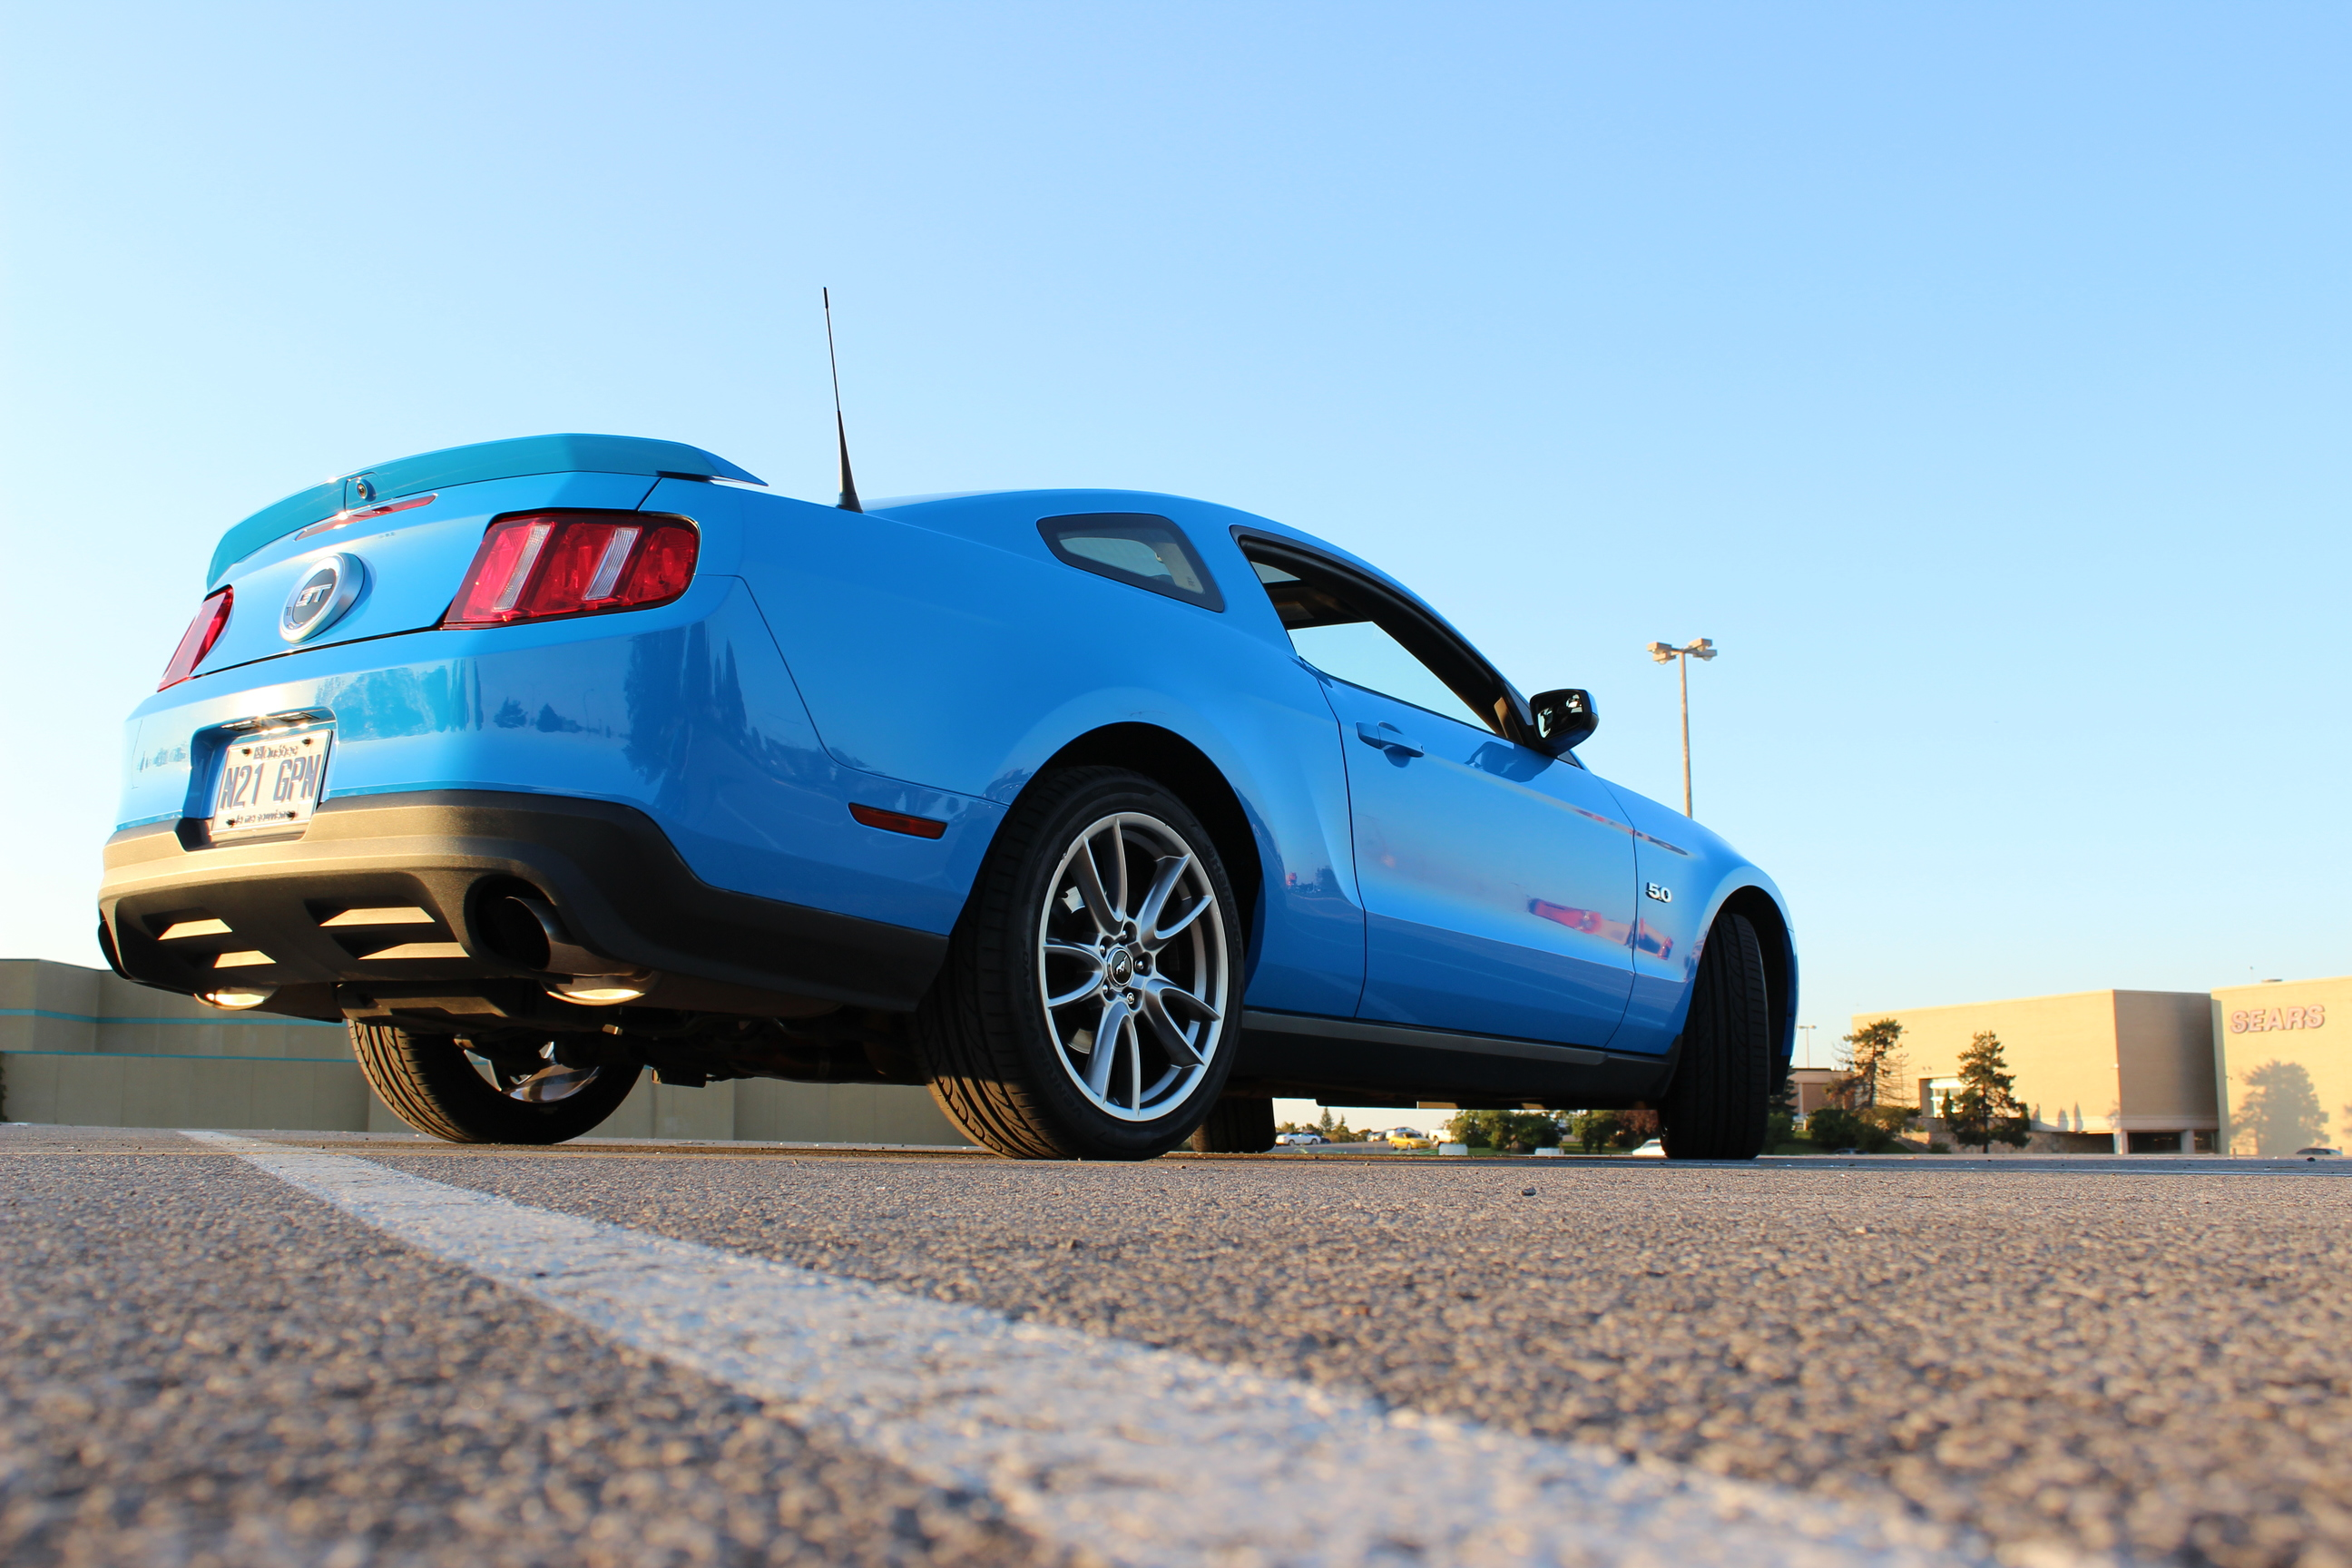 2012 Ford Mustang GT – Lines and Power Galore, but Not for the Faint of Heart